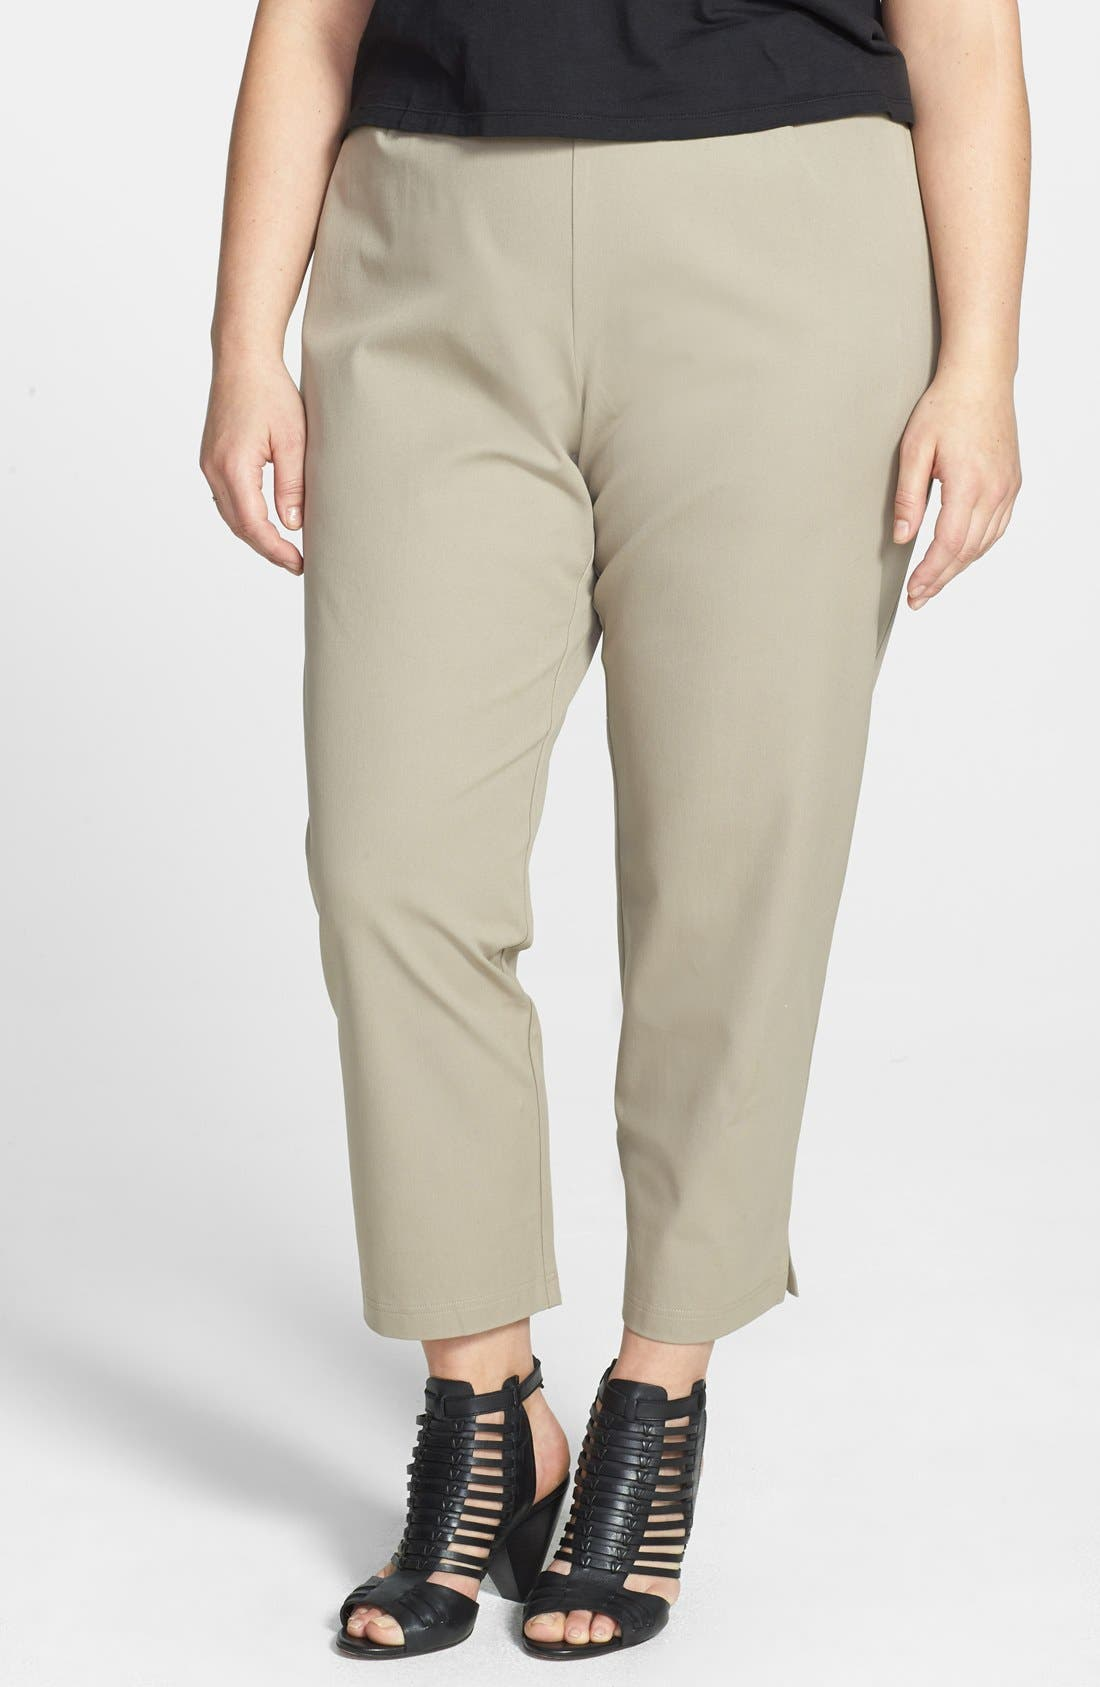 Alternate Image 1 Selected - Eileen Fisher Stretch Organic Cotton Ankle Pants (Plus Size)